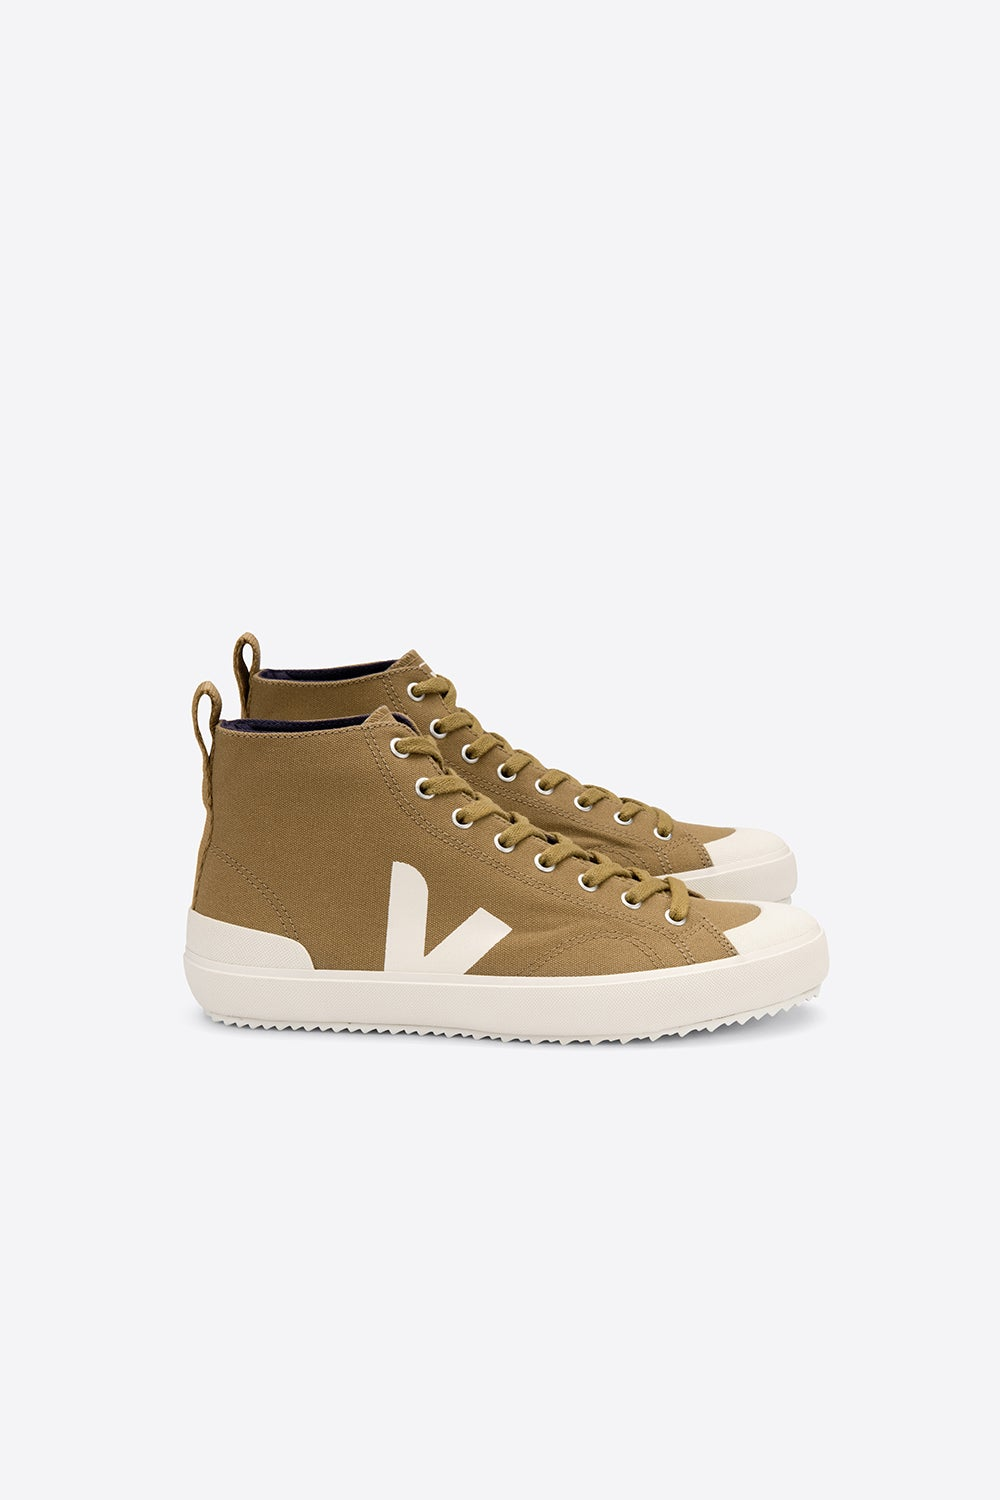 Veja Nova High Top Tent/Pierre